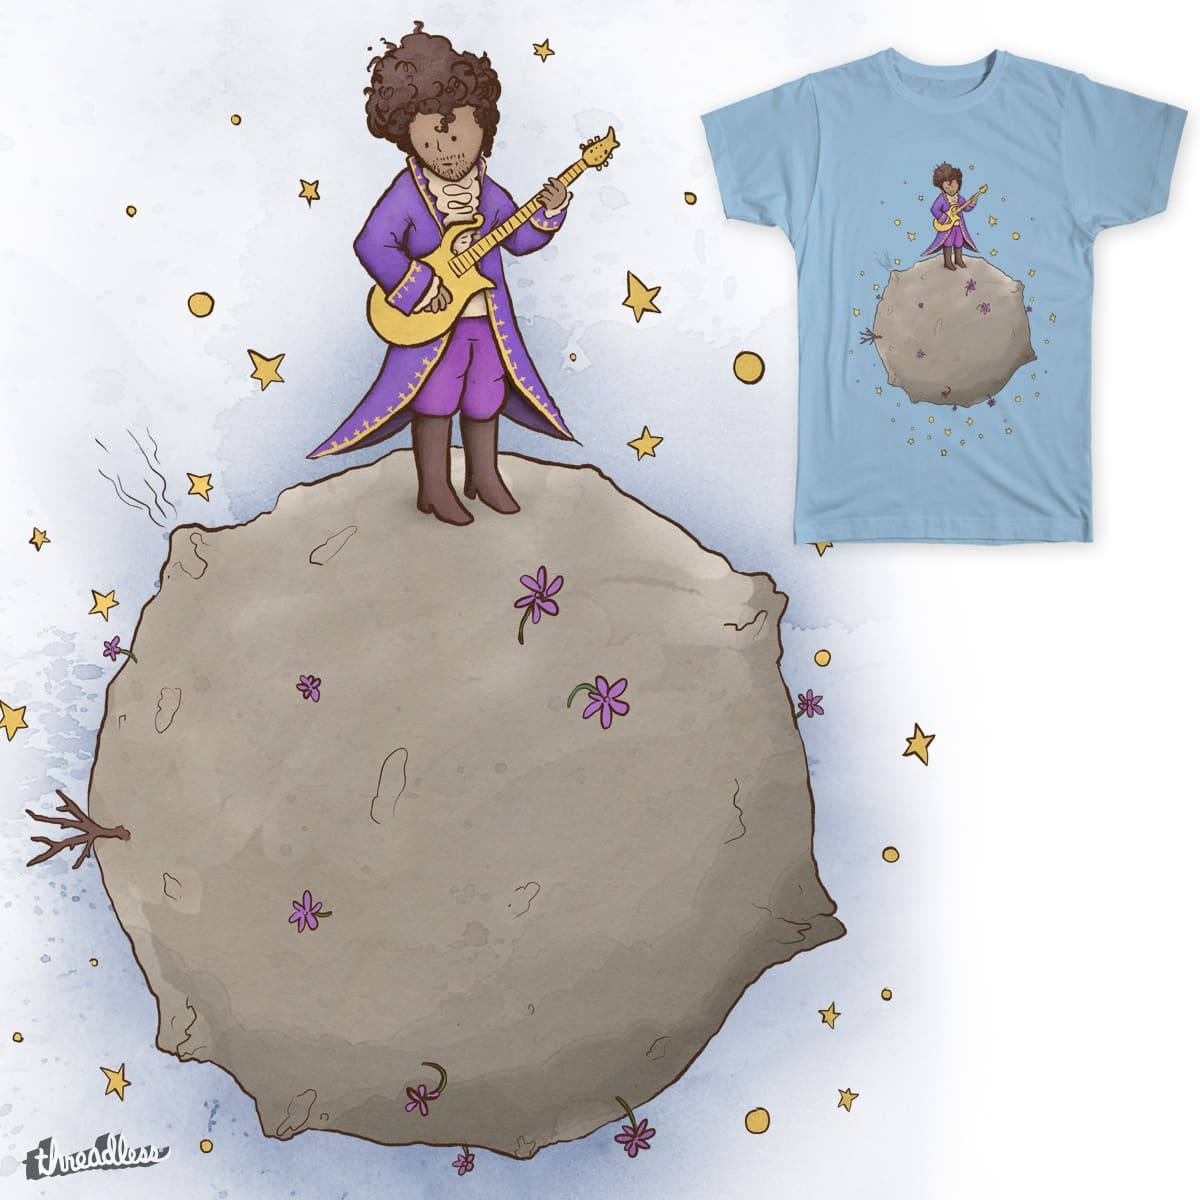 Le Petit Artiste by David Maclennan on Threadless